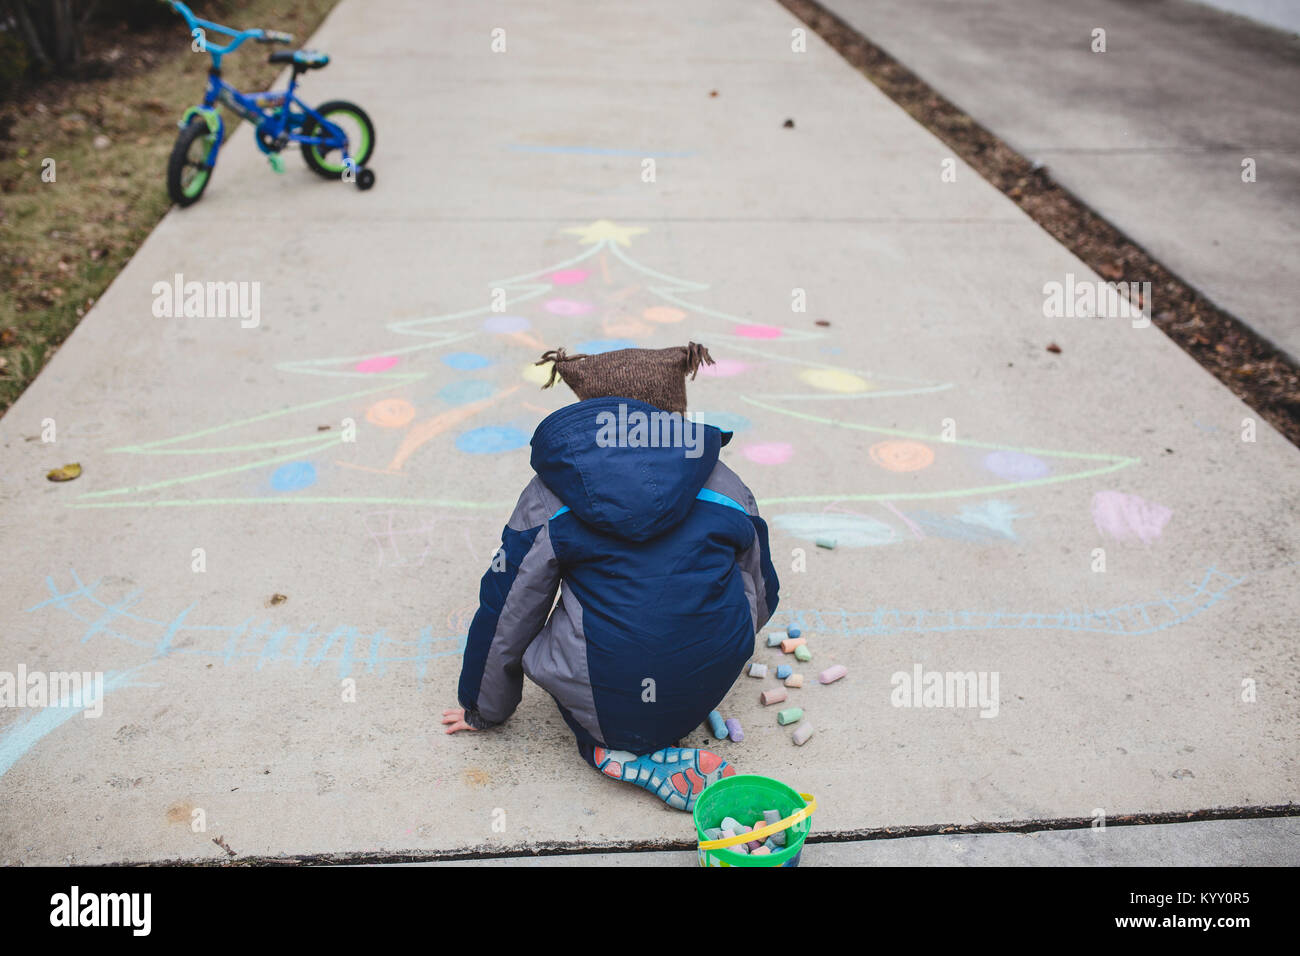 Rear view of boy in warm clothing drawing Christmas tree with chalks on footpath - Stock Image